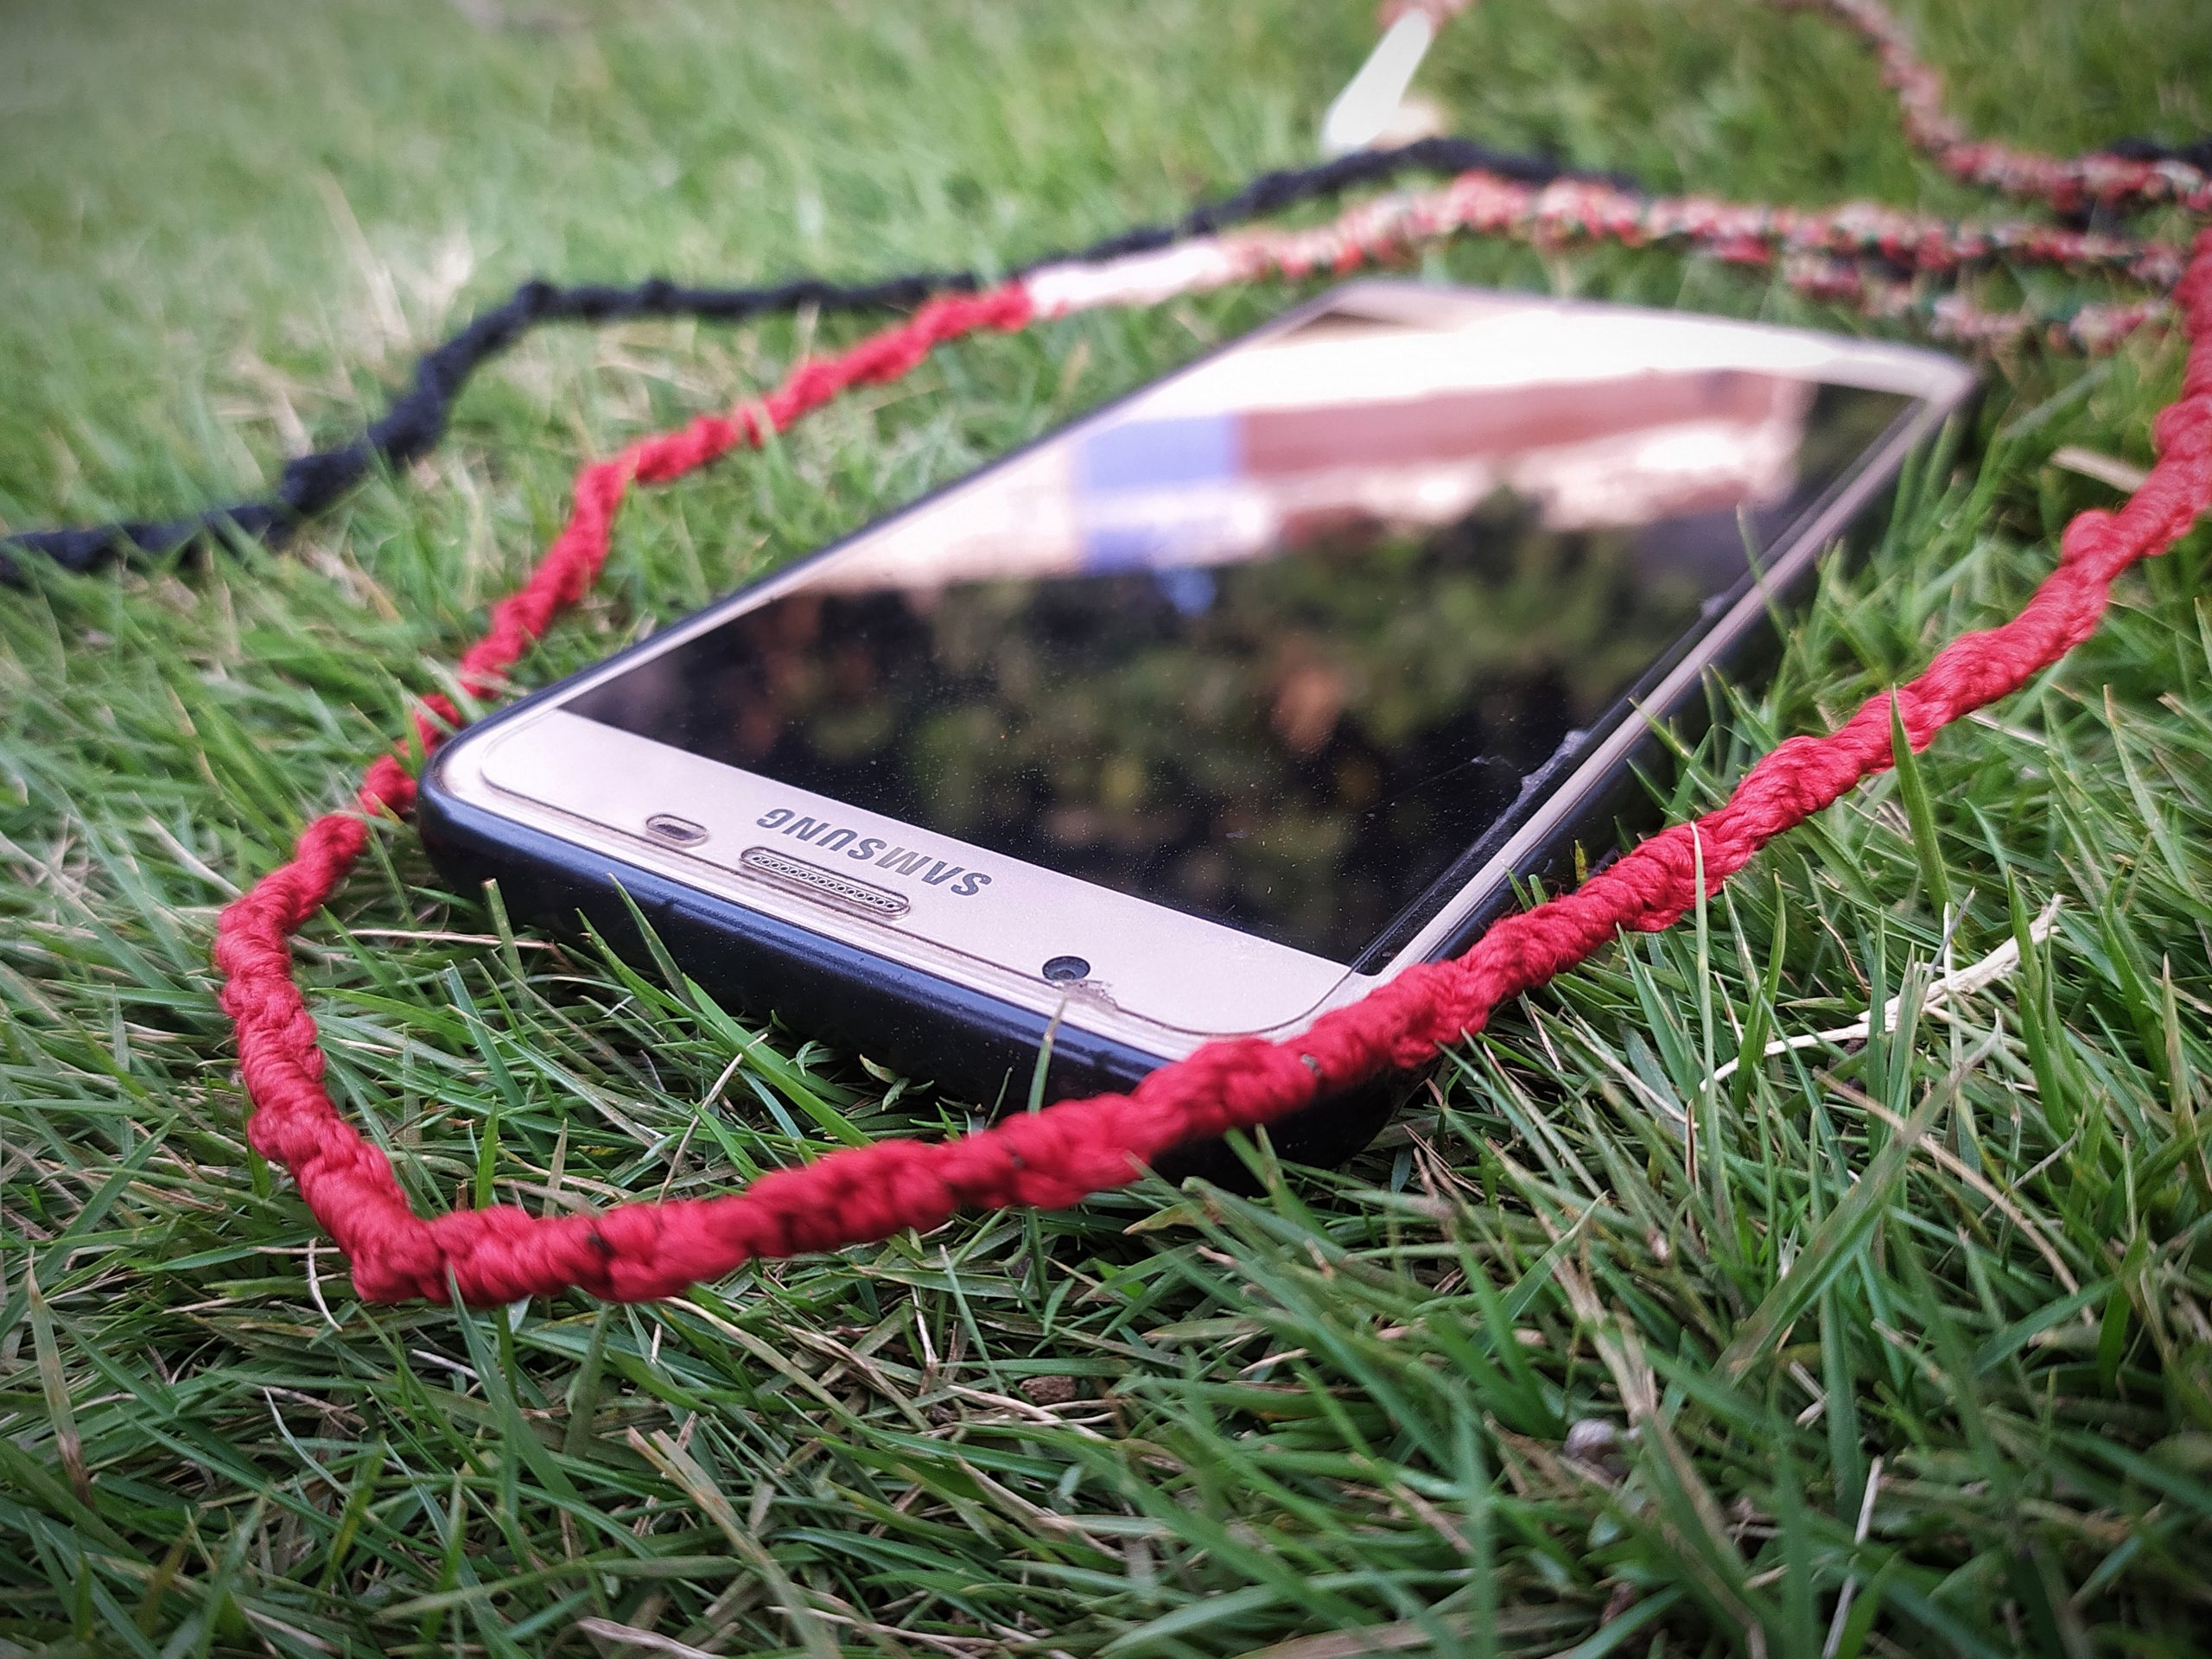 A mobile phone on grass